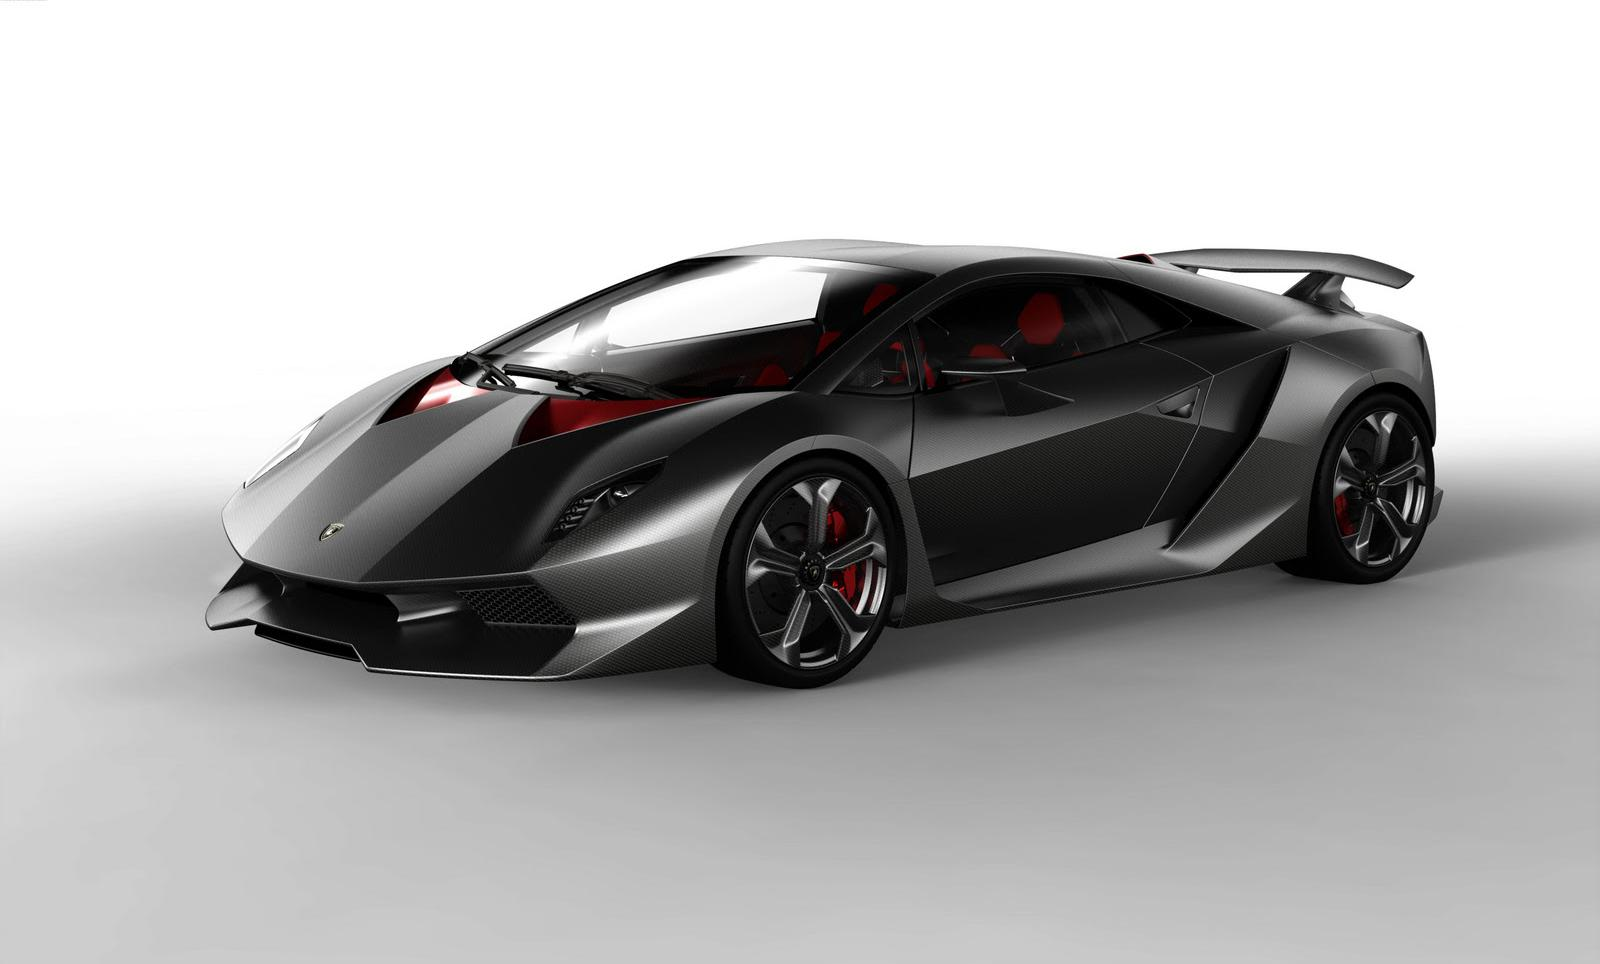 Lamborghini Gallardo Replacement To Debut At Frankfurt